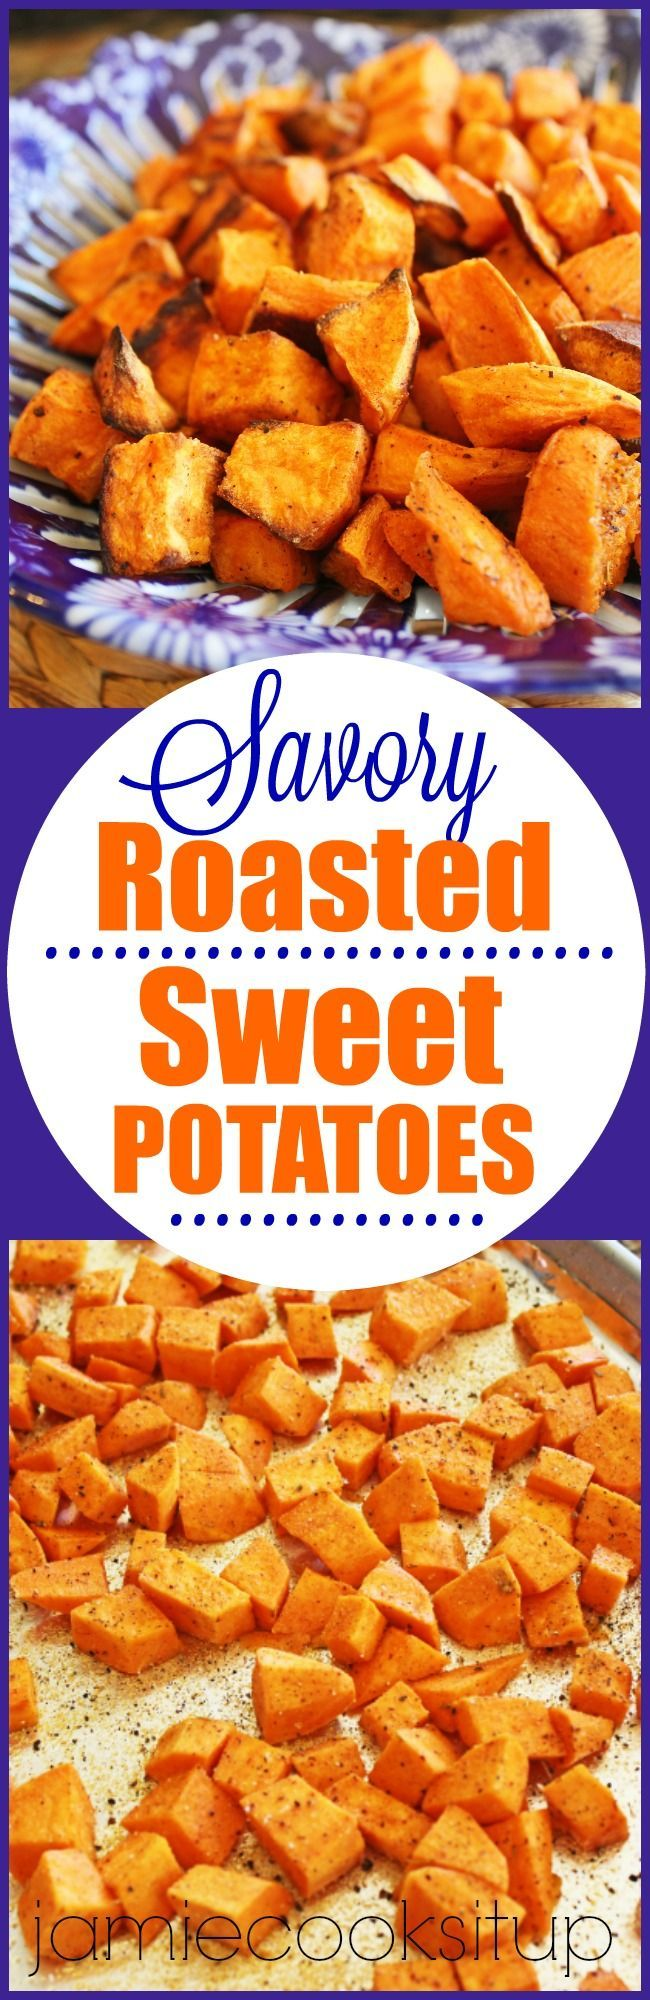 Savory Roasted Sweet Potatoes from Jamie Cooks It Up! These have a heavenly flavor and texture that is out of this worlds. Make them as a healthy side dish for breakfast, lunch or dinner.